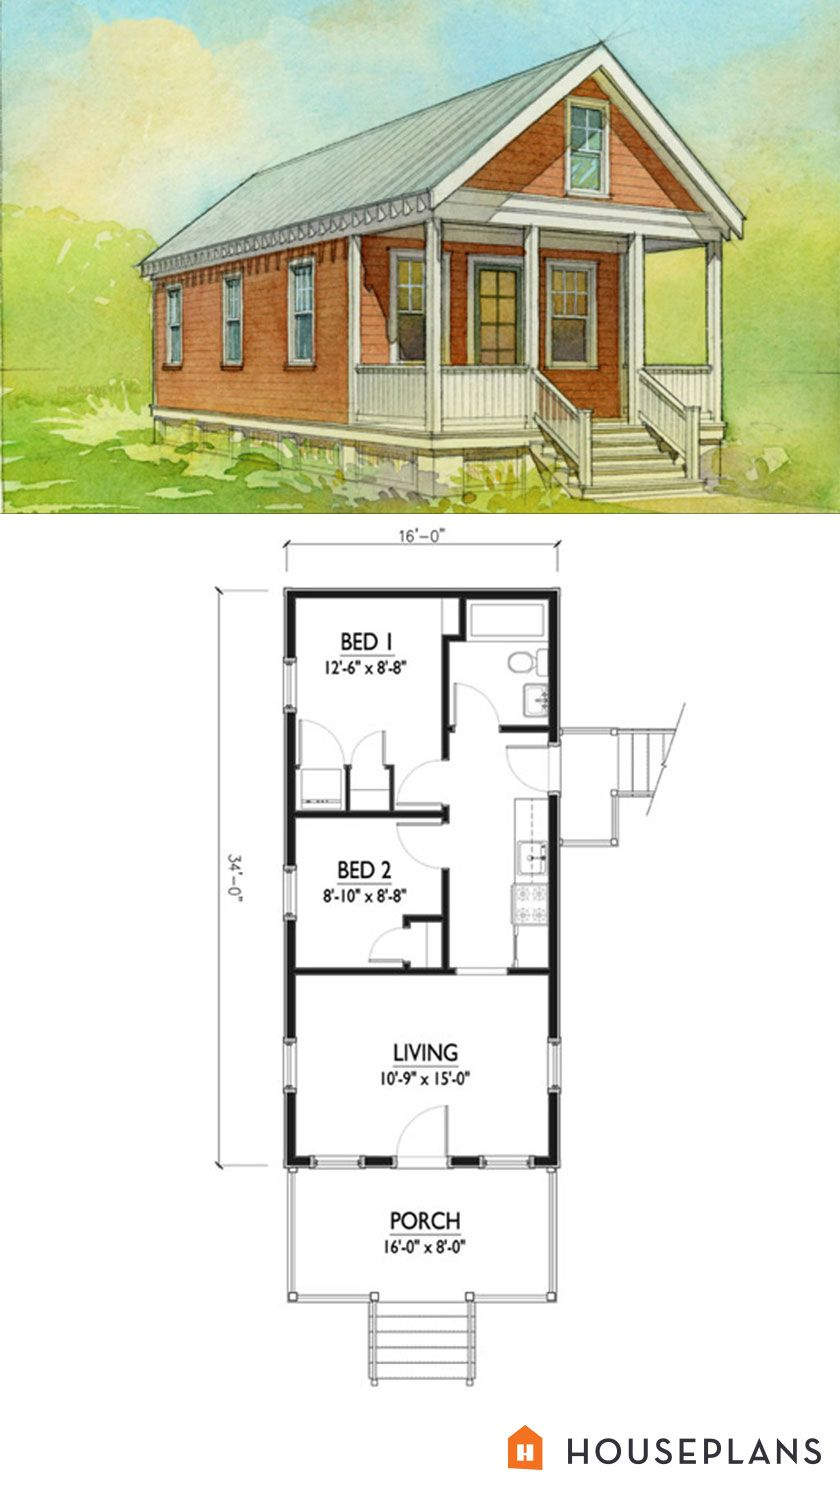 Small katrina cottage house plan 500sft 2br 1 bath by for Small bungalow plans